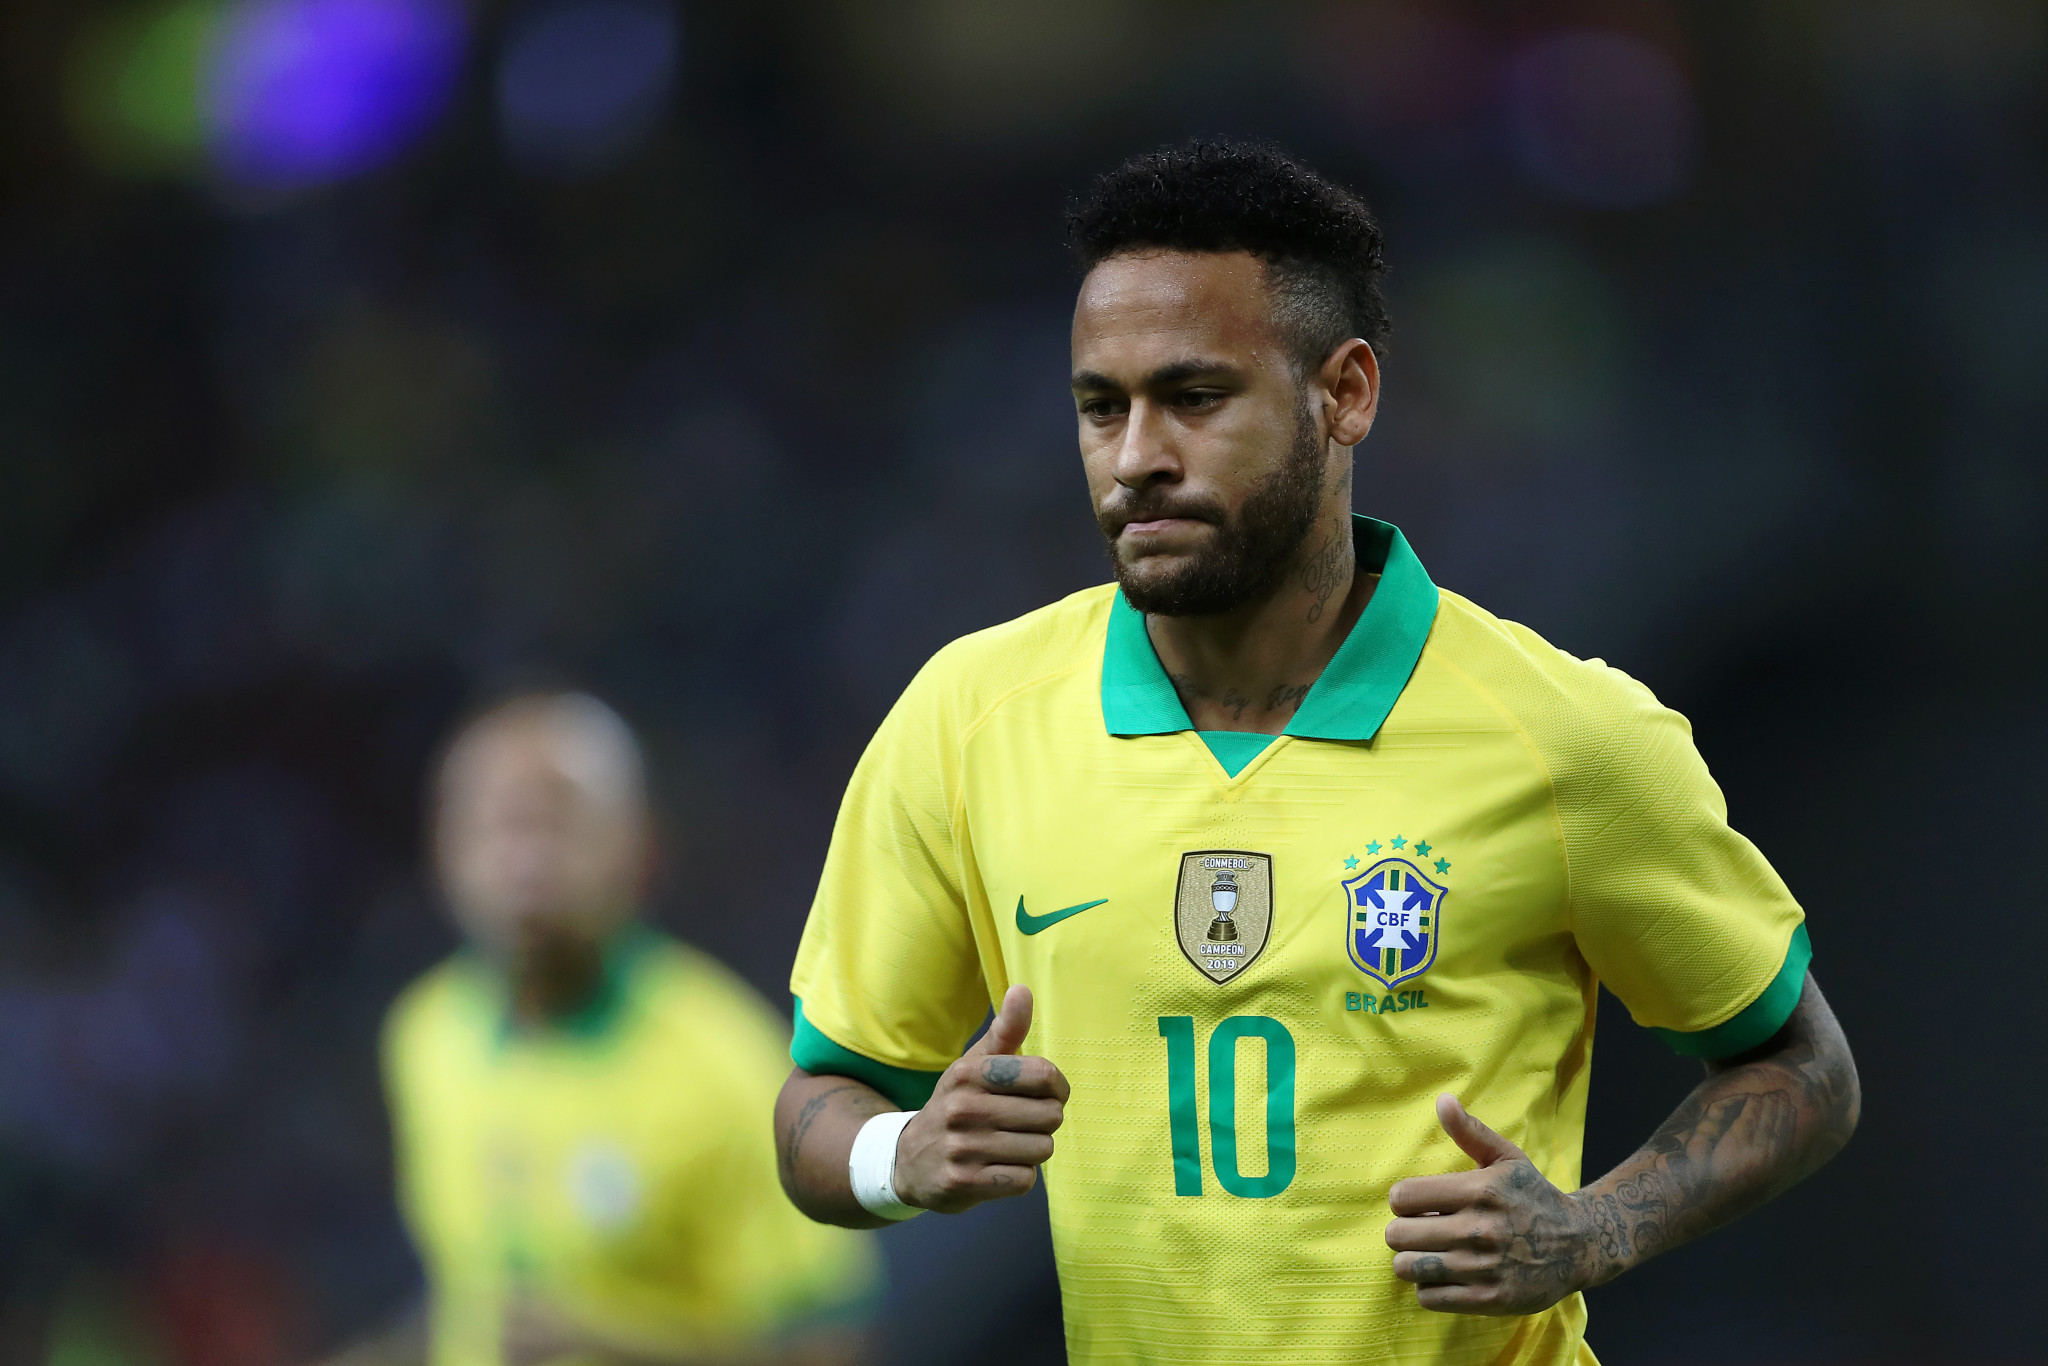 Brazil's Olympic athletes - which could include footballer Neymar, will undergo mandatory anti-racism training ©Getty Images